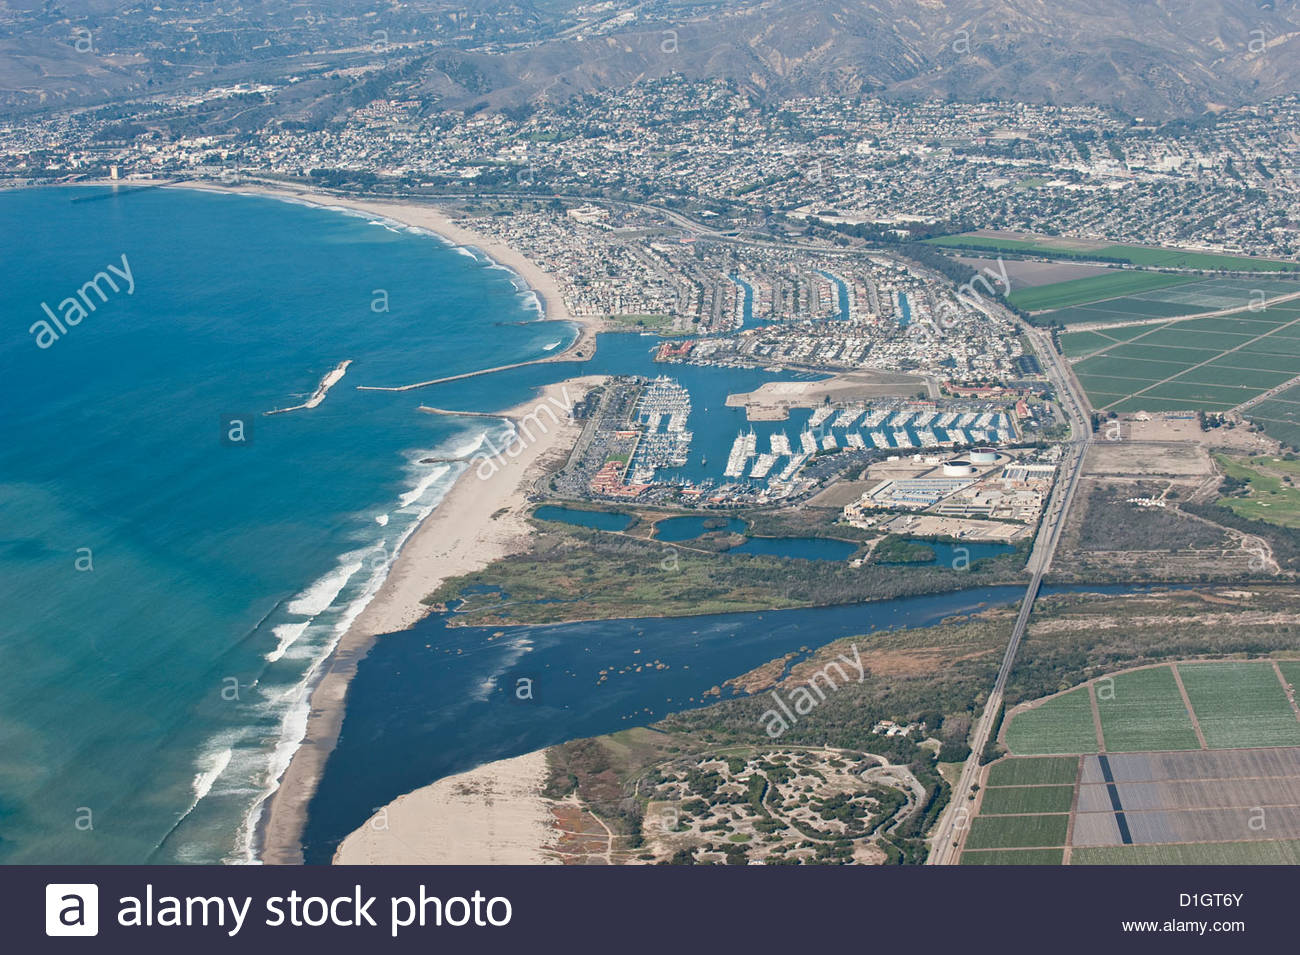 Aerial photo of Ventura marina, Ventura, California, United States of America, North America - Stock Image